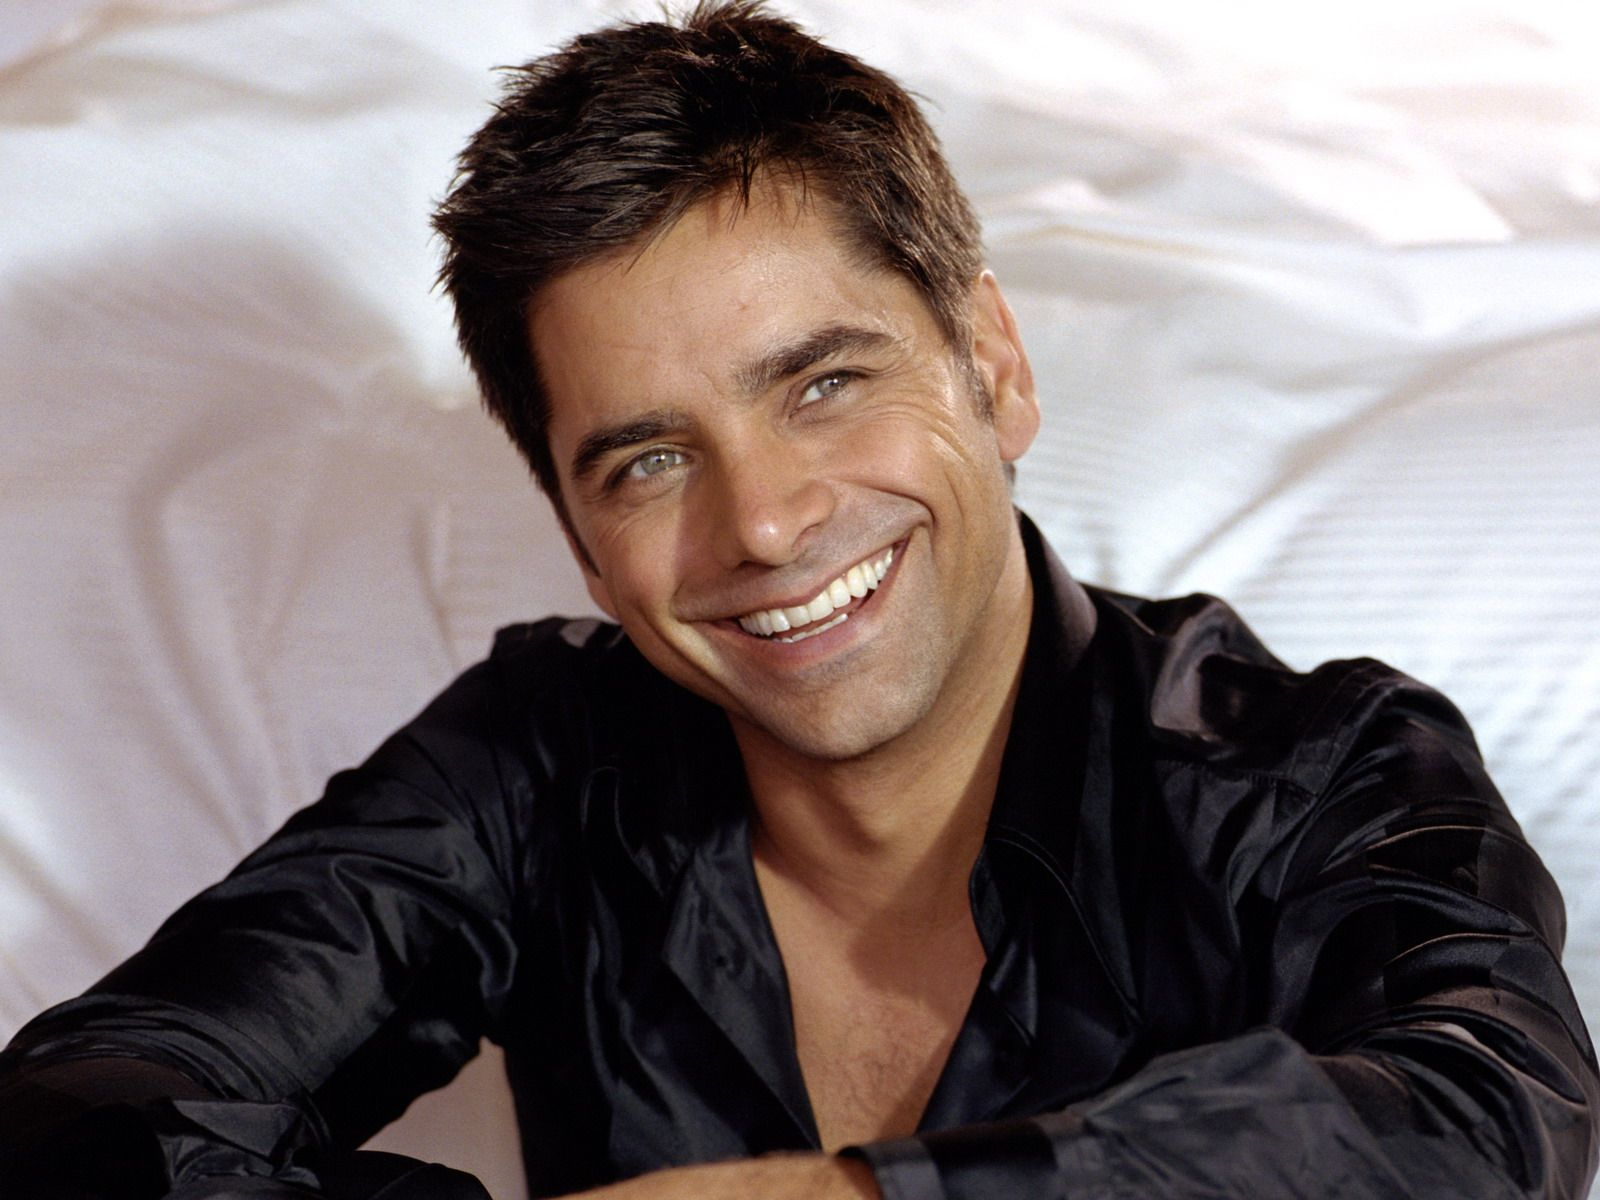 john stamos memejohn stamos loving you, john stamos young, john stamos meme, john stamos wiki, john stamos instagram, john stamos and lori loughlin, john stamos who dated who, john stamos clone high, john stamos home, john stamos glen powell, john stamos ellen, john stamos glee, john stamos hot patootie, john stamos wikipedia, john stamos everywhere you look, john stamos loving you lyrics, john stamos sitcom, john stamos tumblr, john stamos filmography, john stamos south park